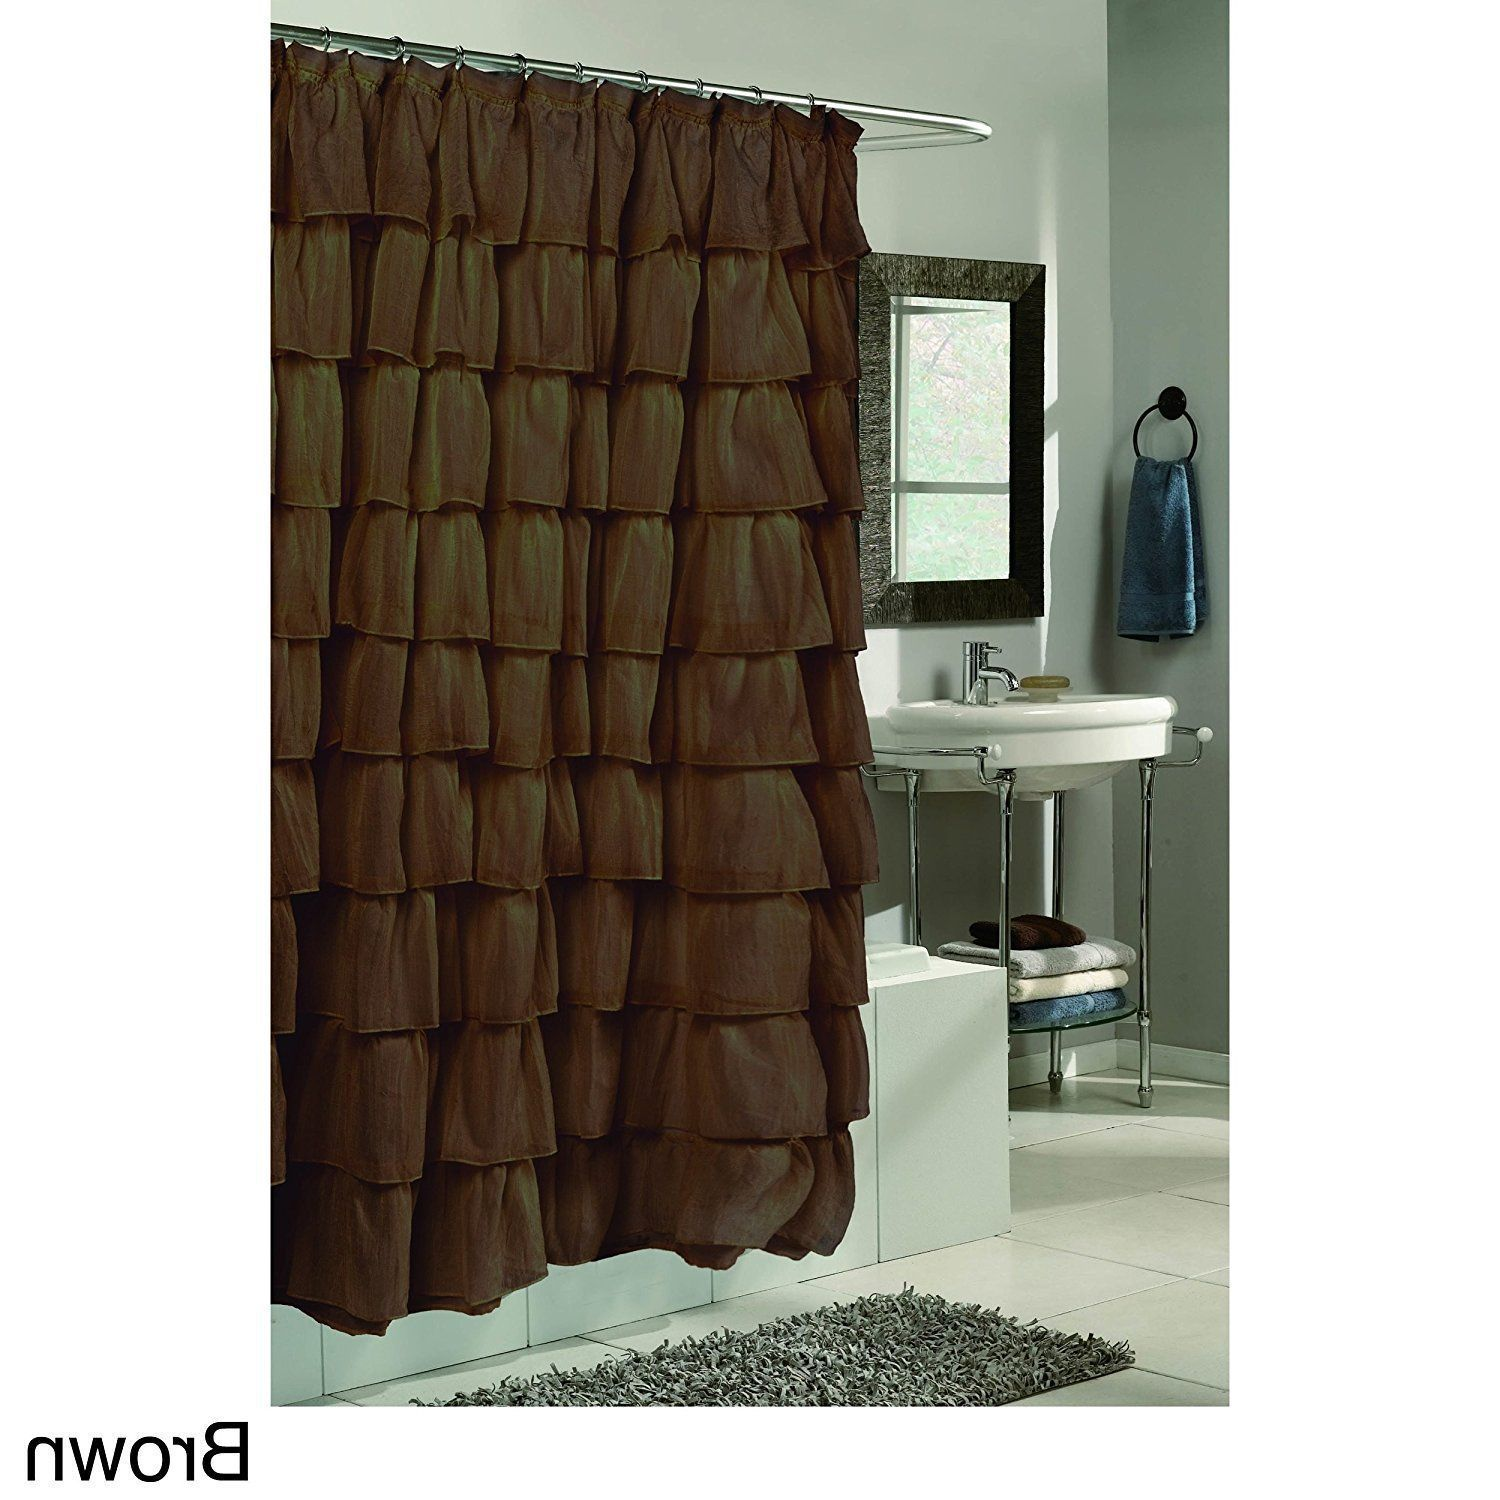 Curtains wall architecture long curtains pvc pipescurtains wall